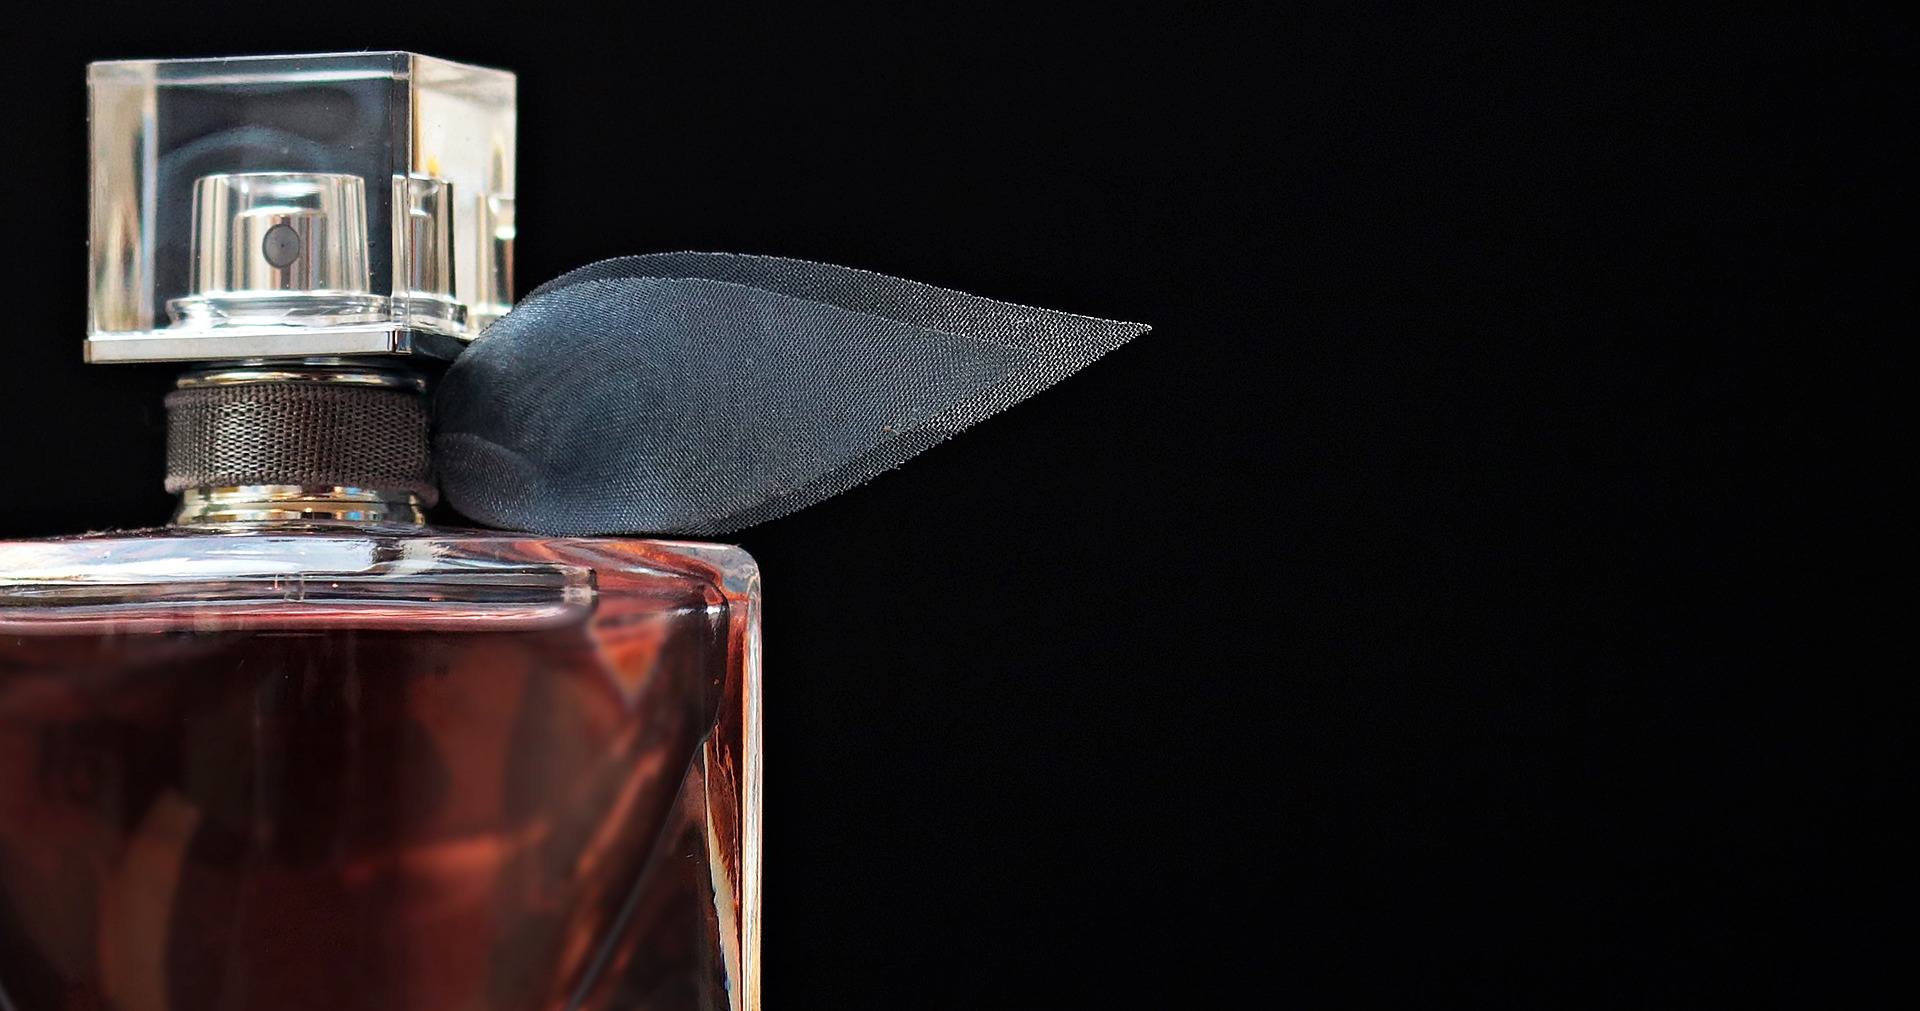 Japan Using AI To Experience Perfume Scents: Bizarre Or Normal? | Analytics India Mag